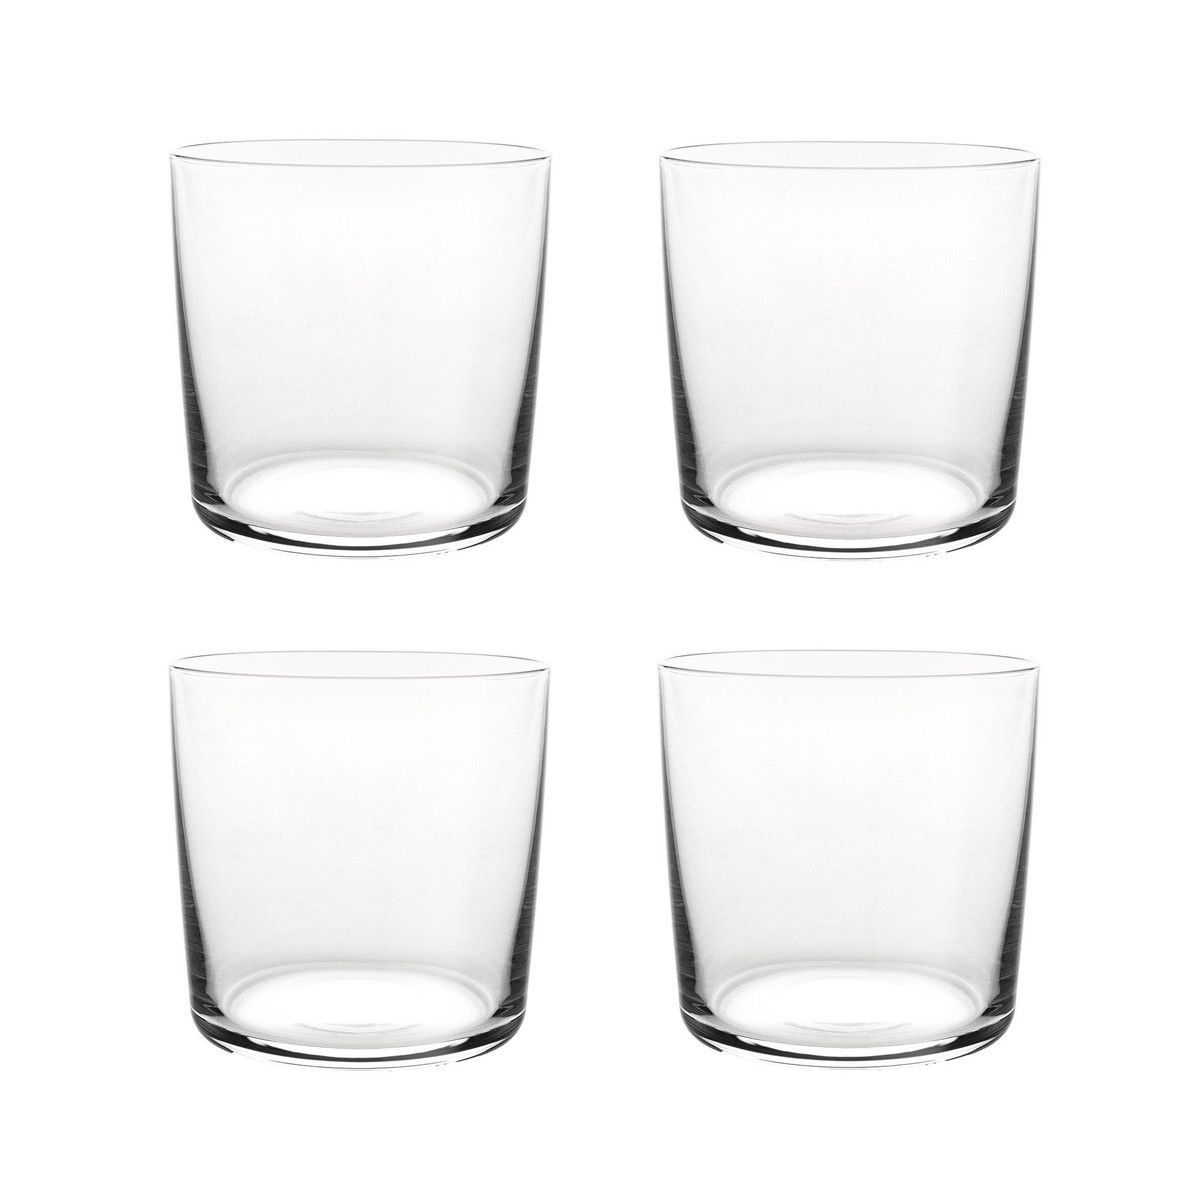 glass family water glass set of 4 alessi. Black Bedroom Furniture Sets. Home Design Ideas